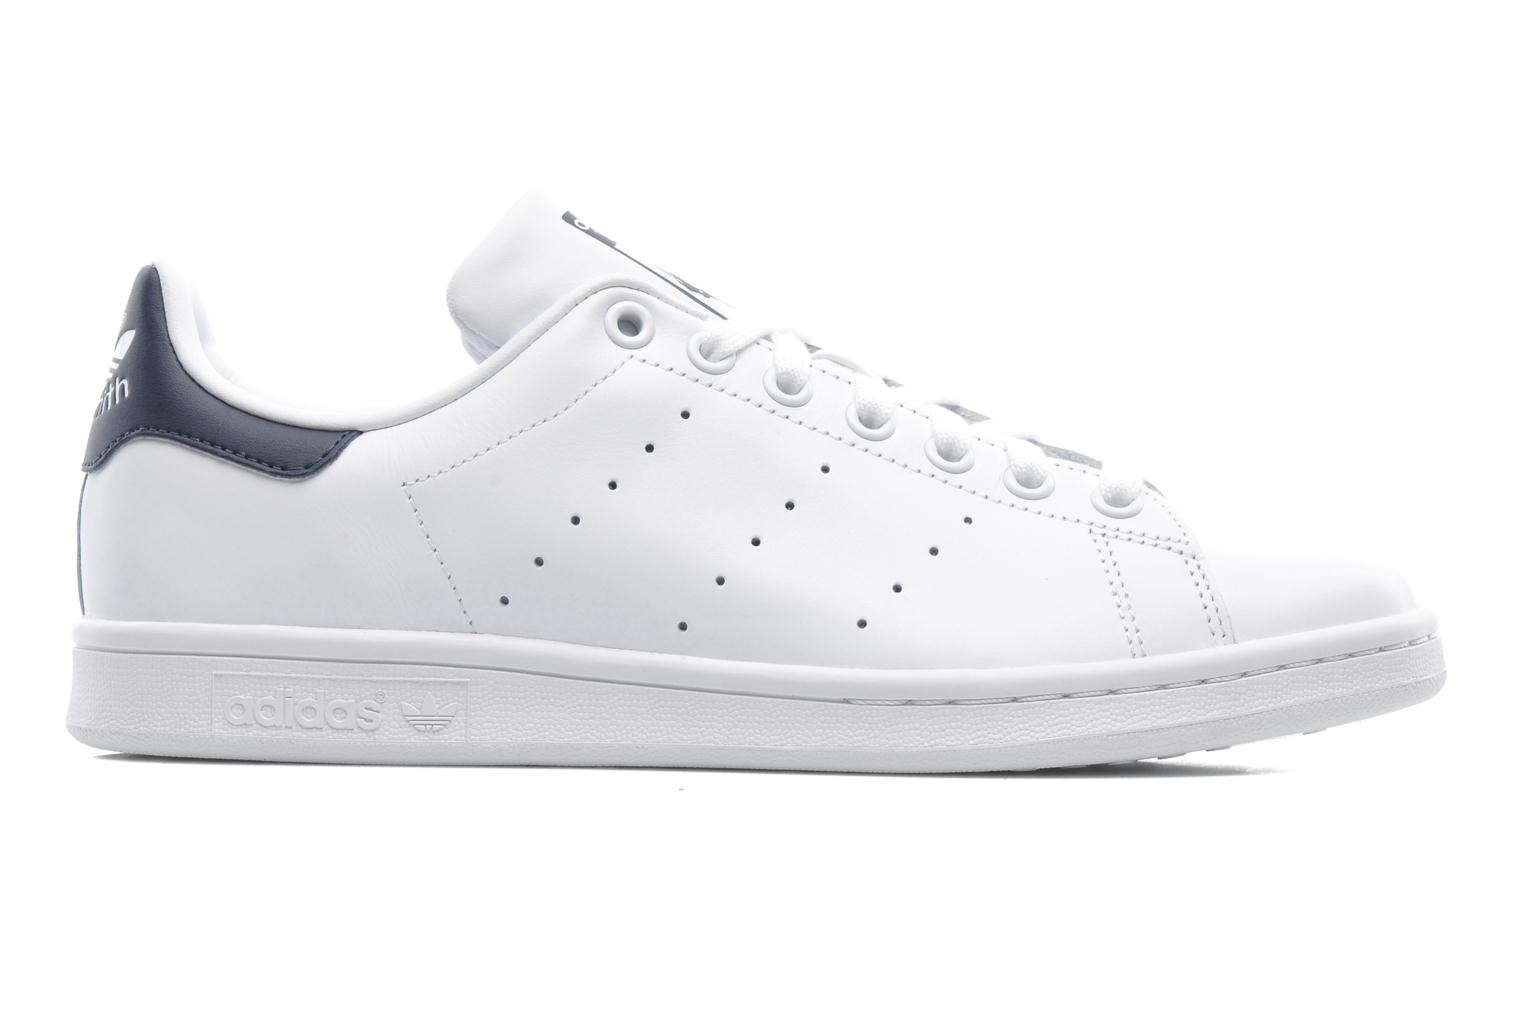 Stan Smith Blacou/Blacou/Nounav